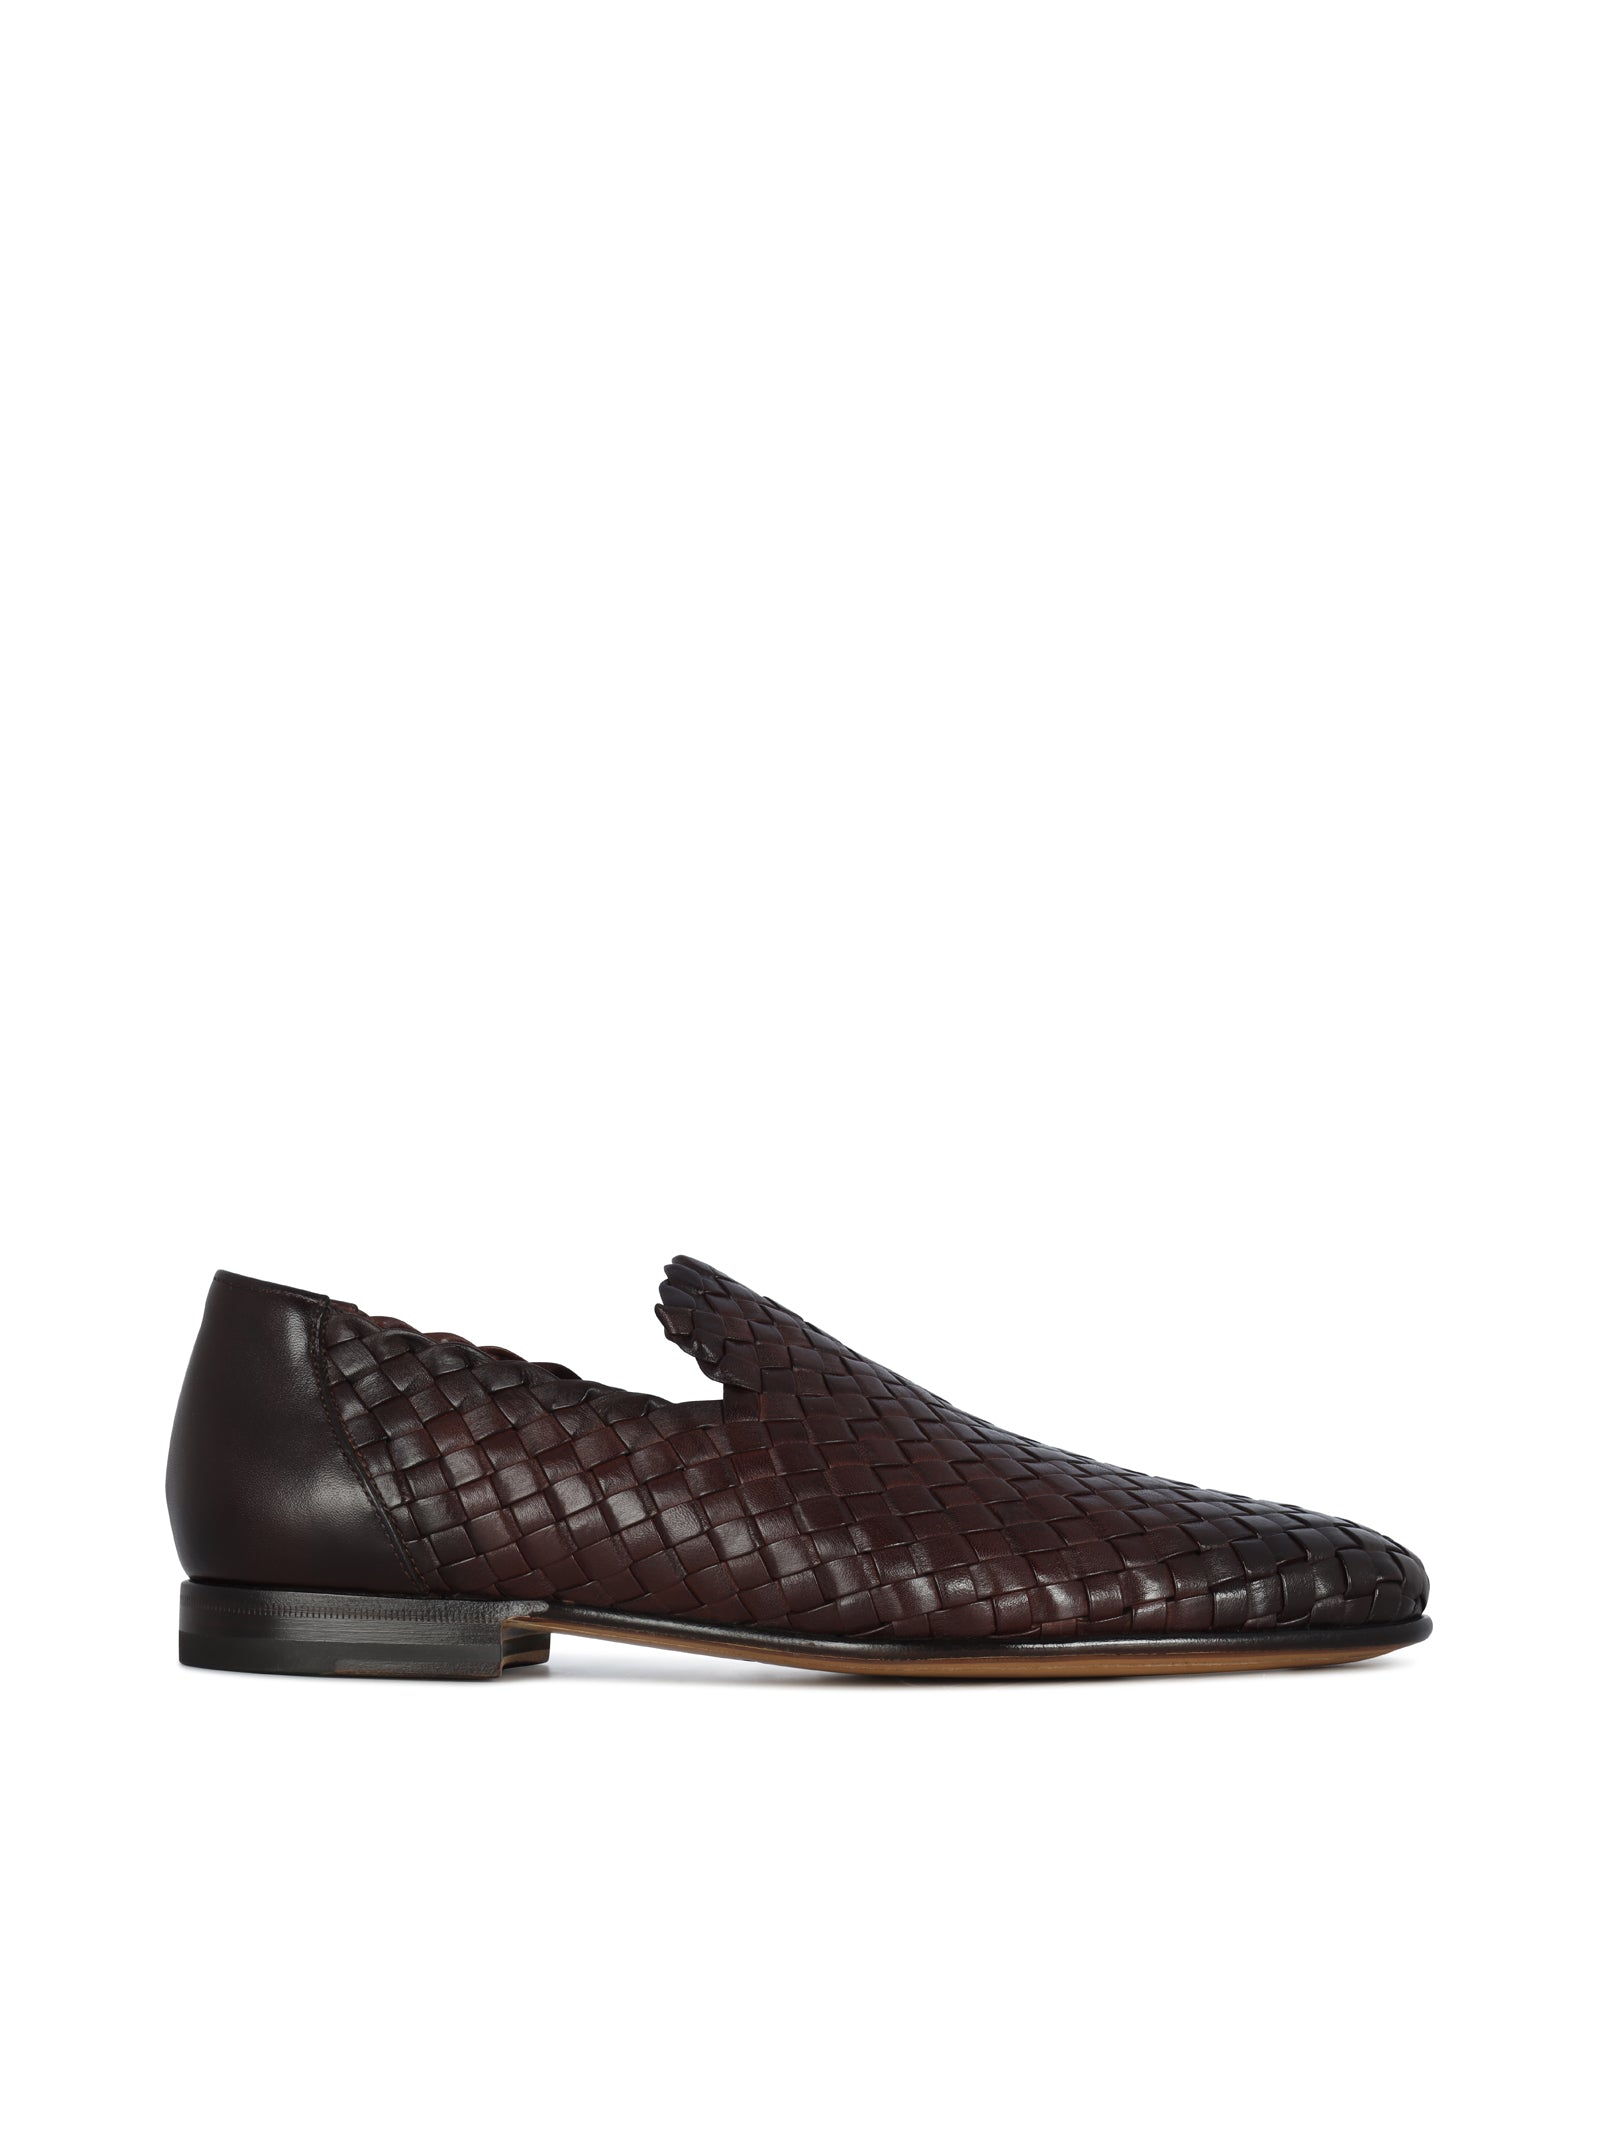 BACKBONE LOAFER